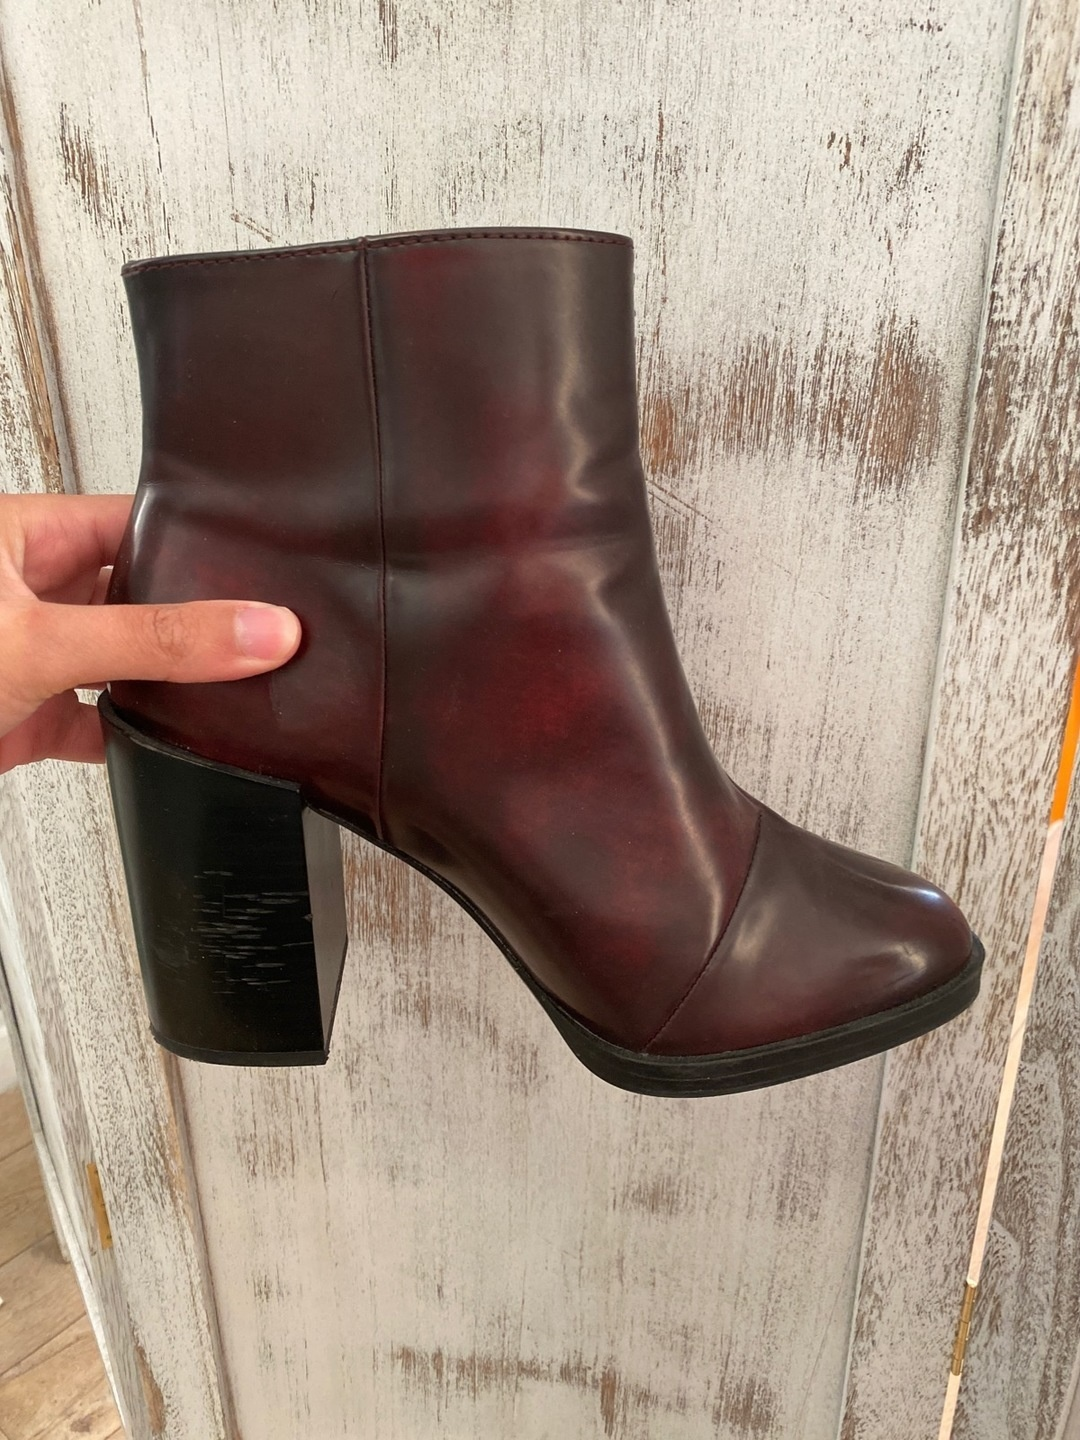 Women's boots - ZARA photo 4